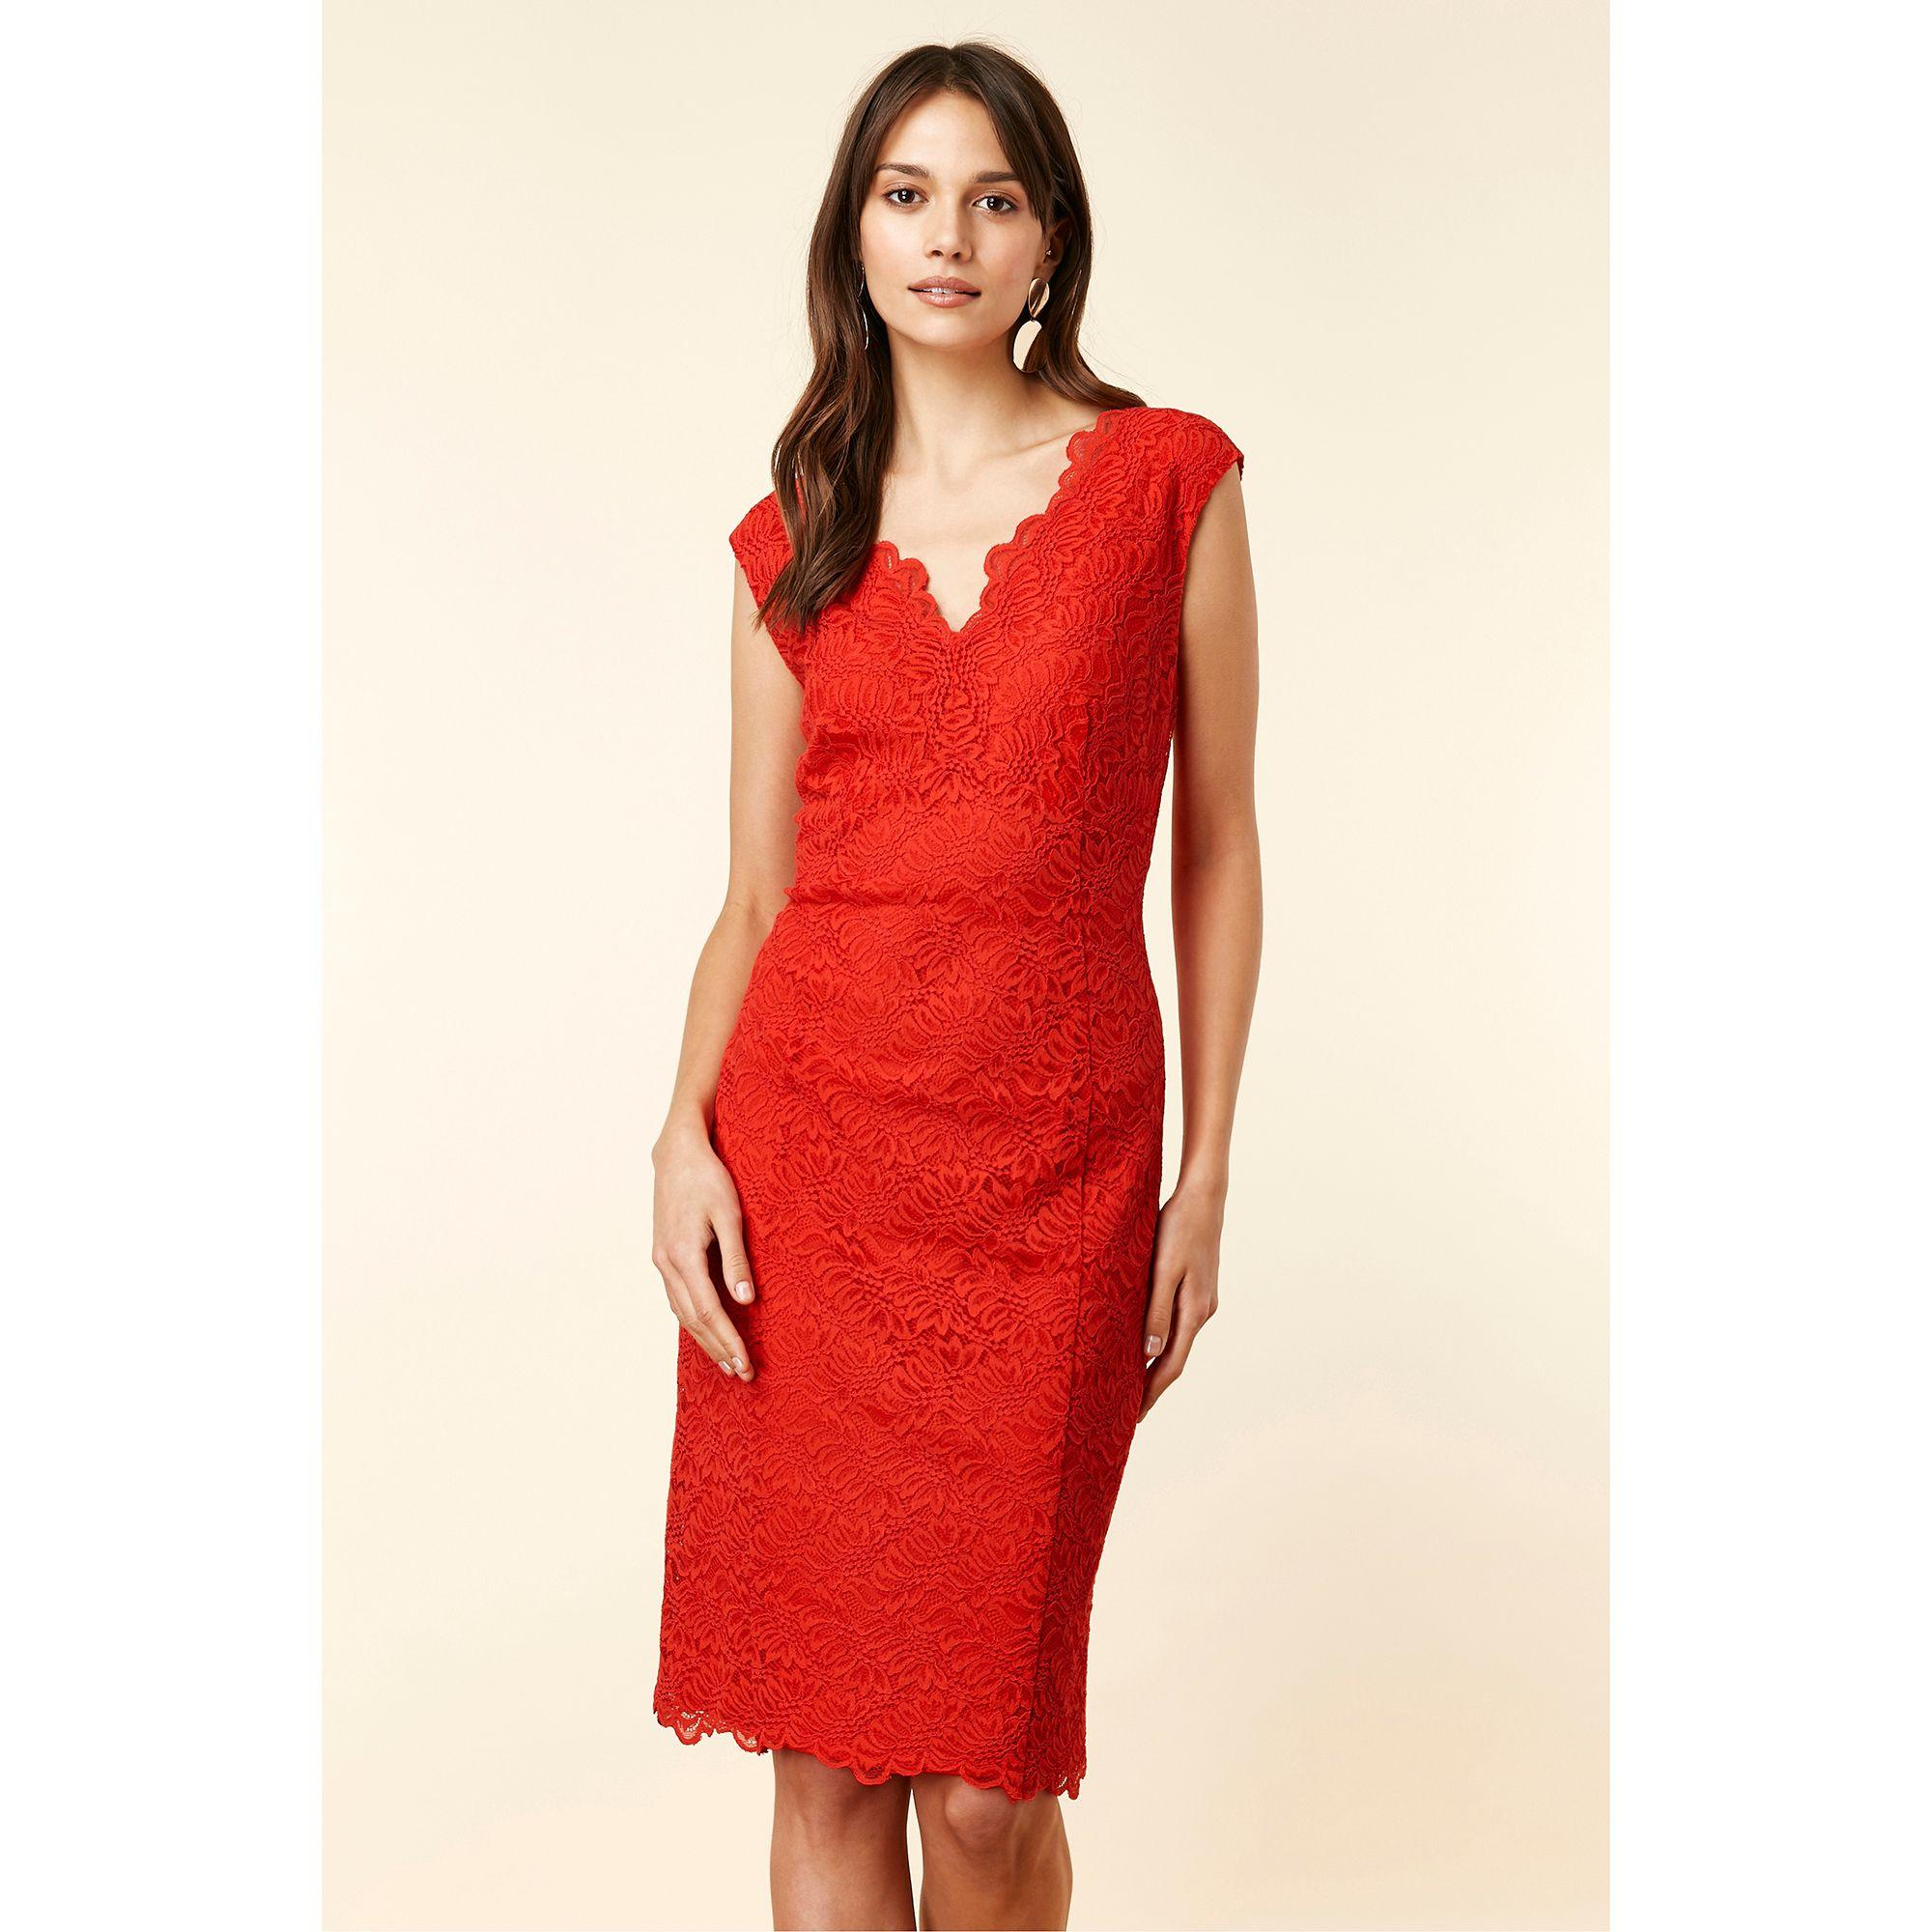 Wallis Red Scallop V Neck Lace Shift Dress in Red - Lyst 214299c09